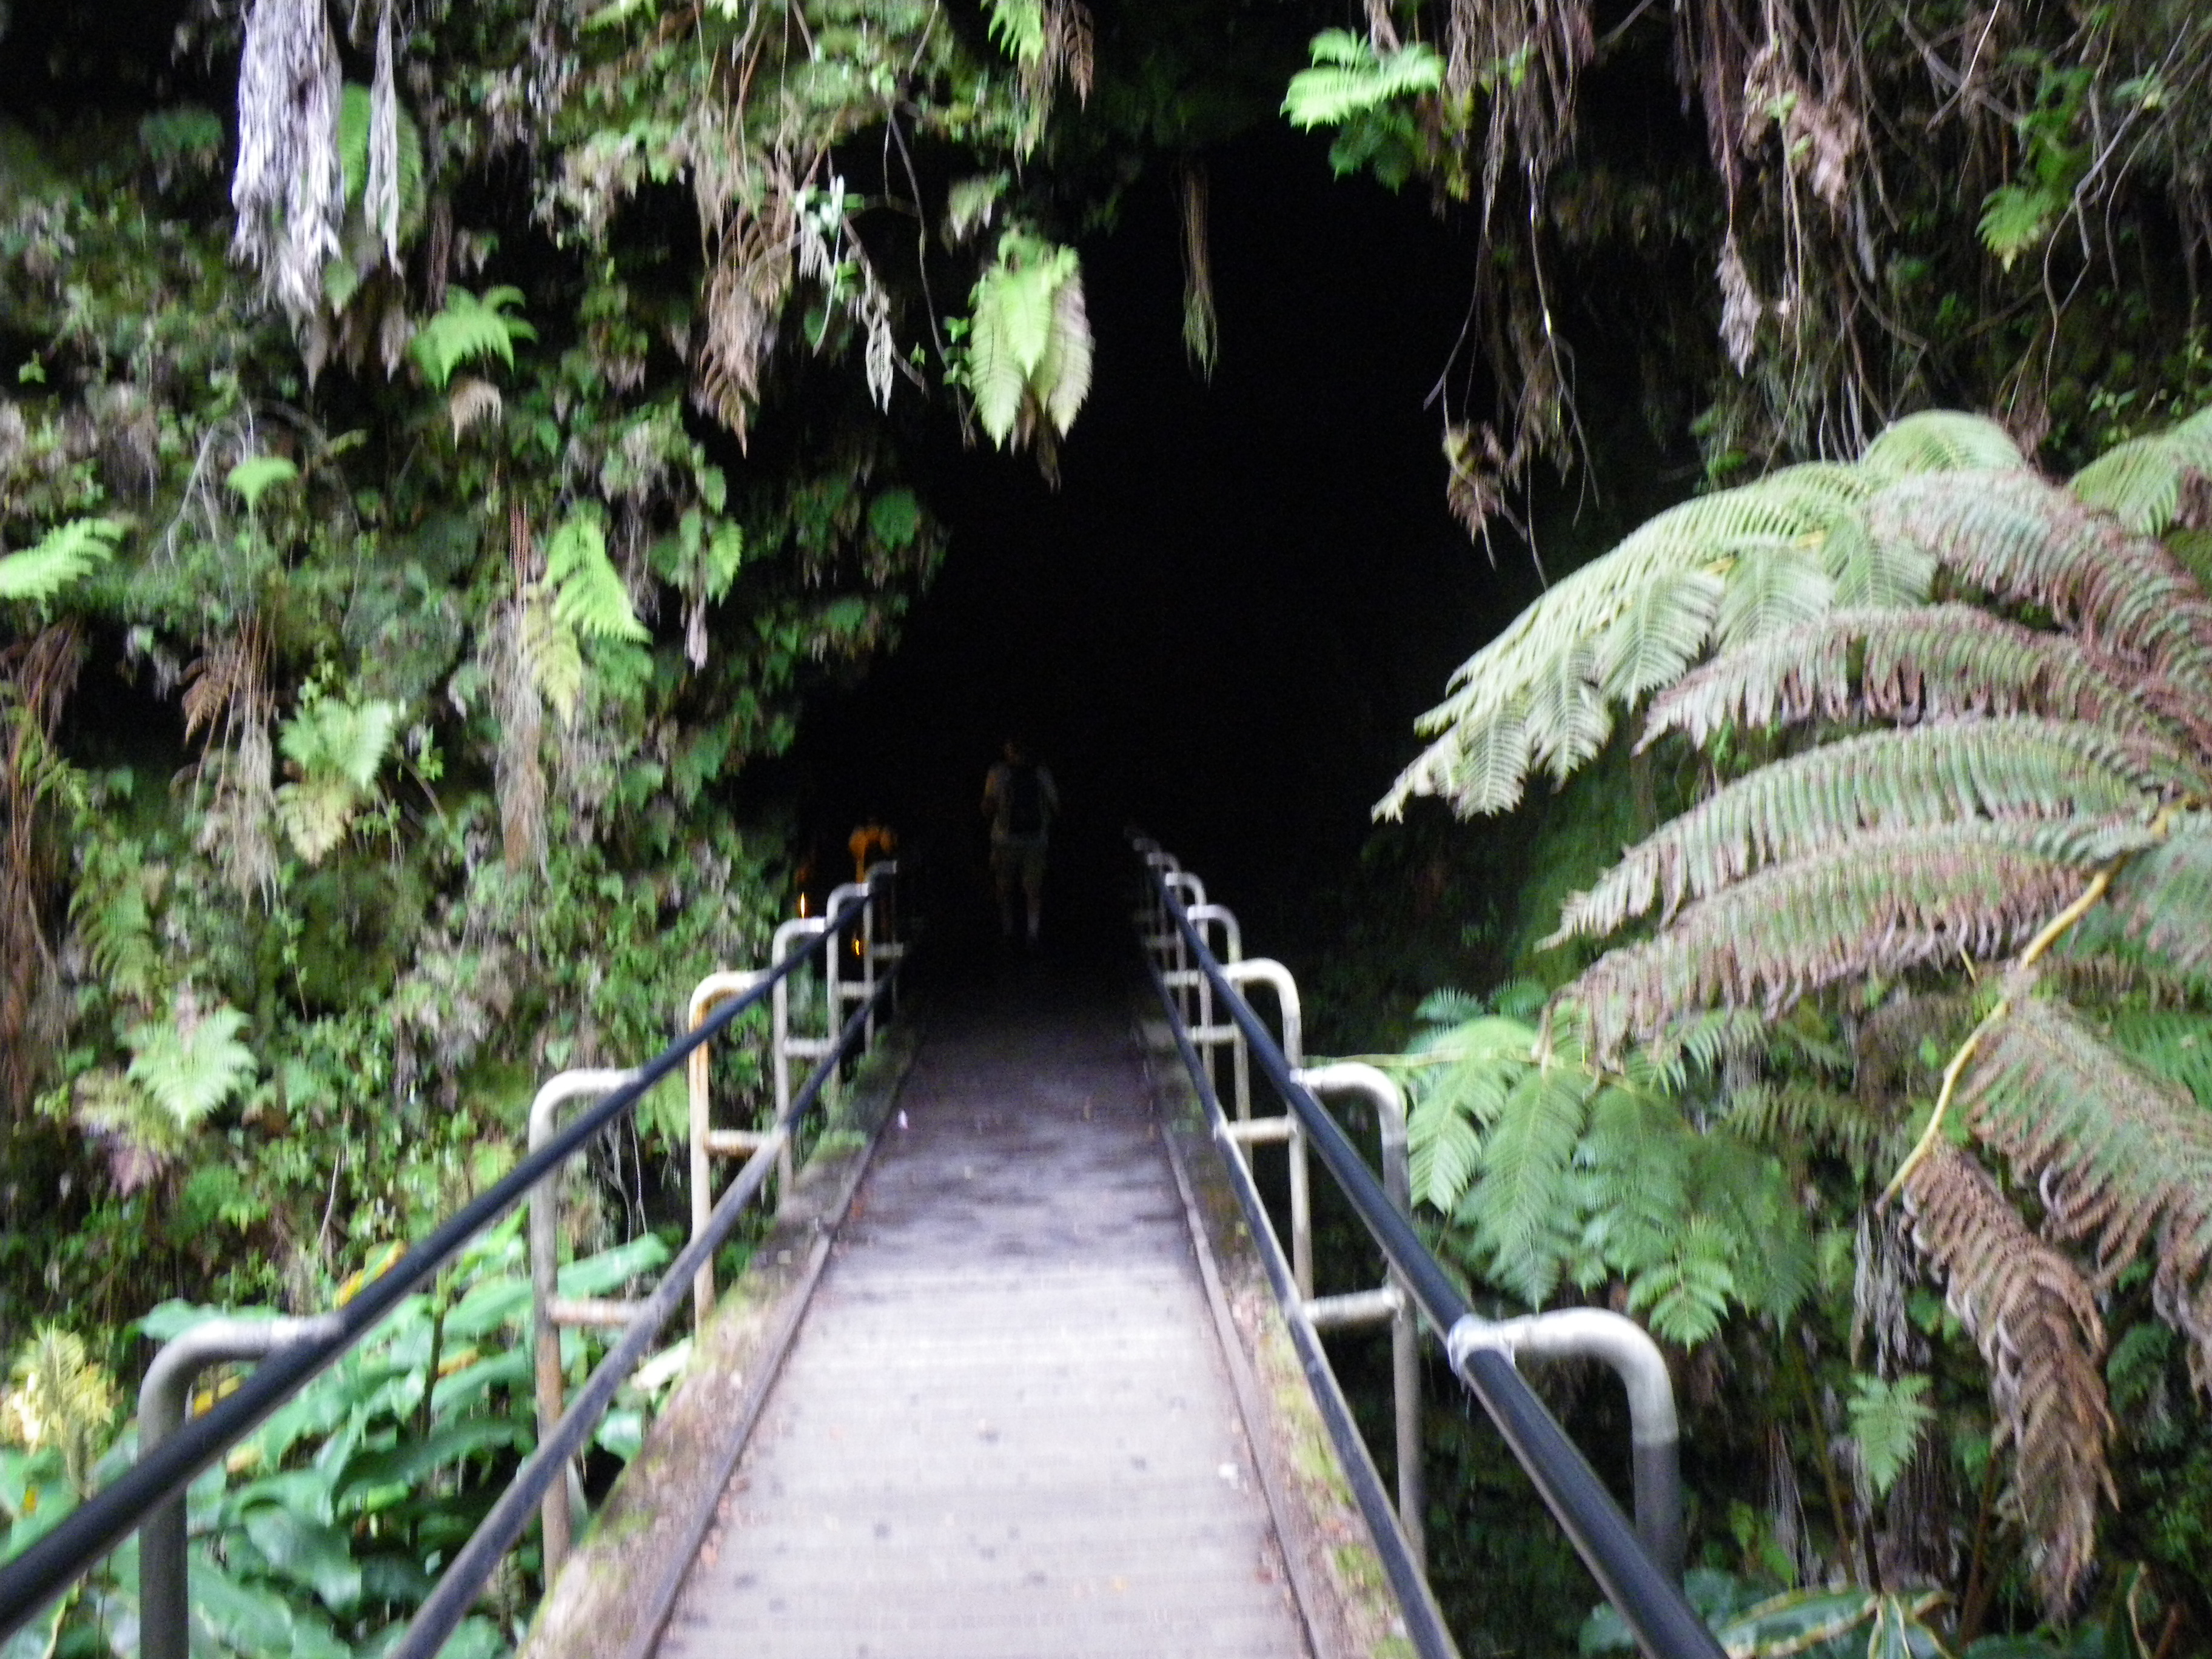 Entrance to Thurston Lava Tube.  How amazing to walk through a fern forest to this huge tube imagining lava flowing from the volcano and through the tube.